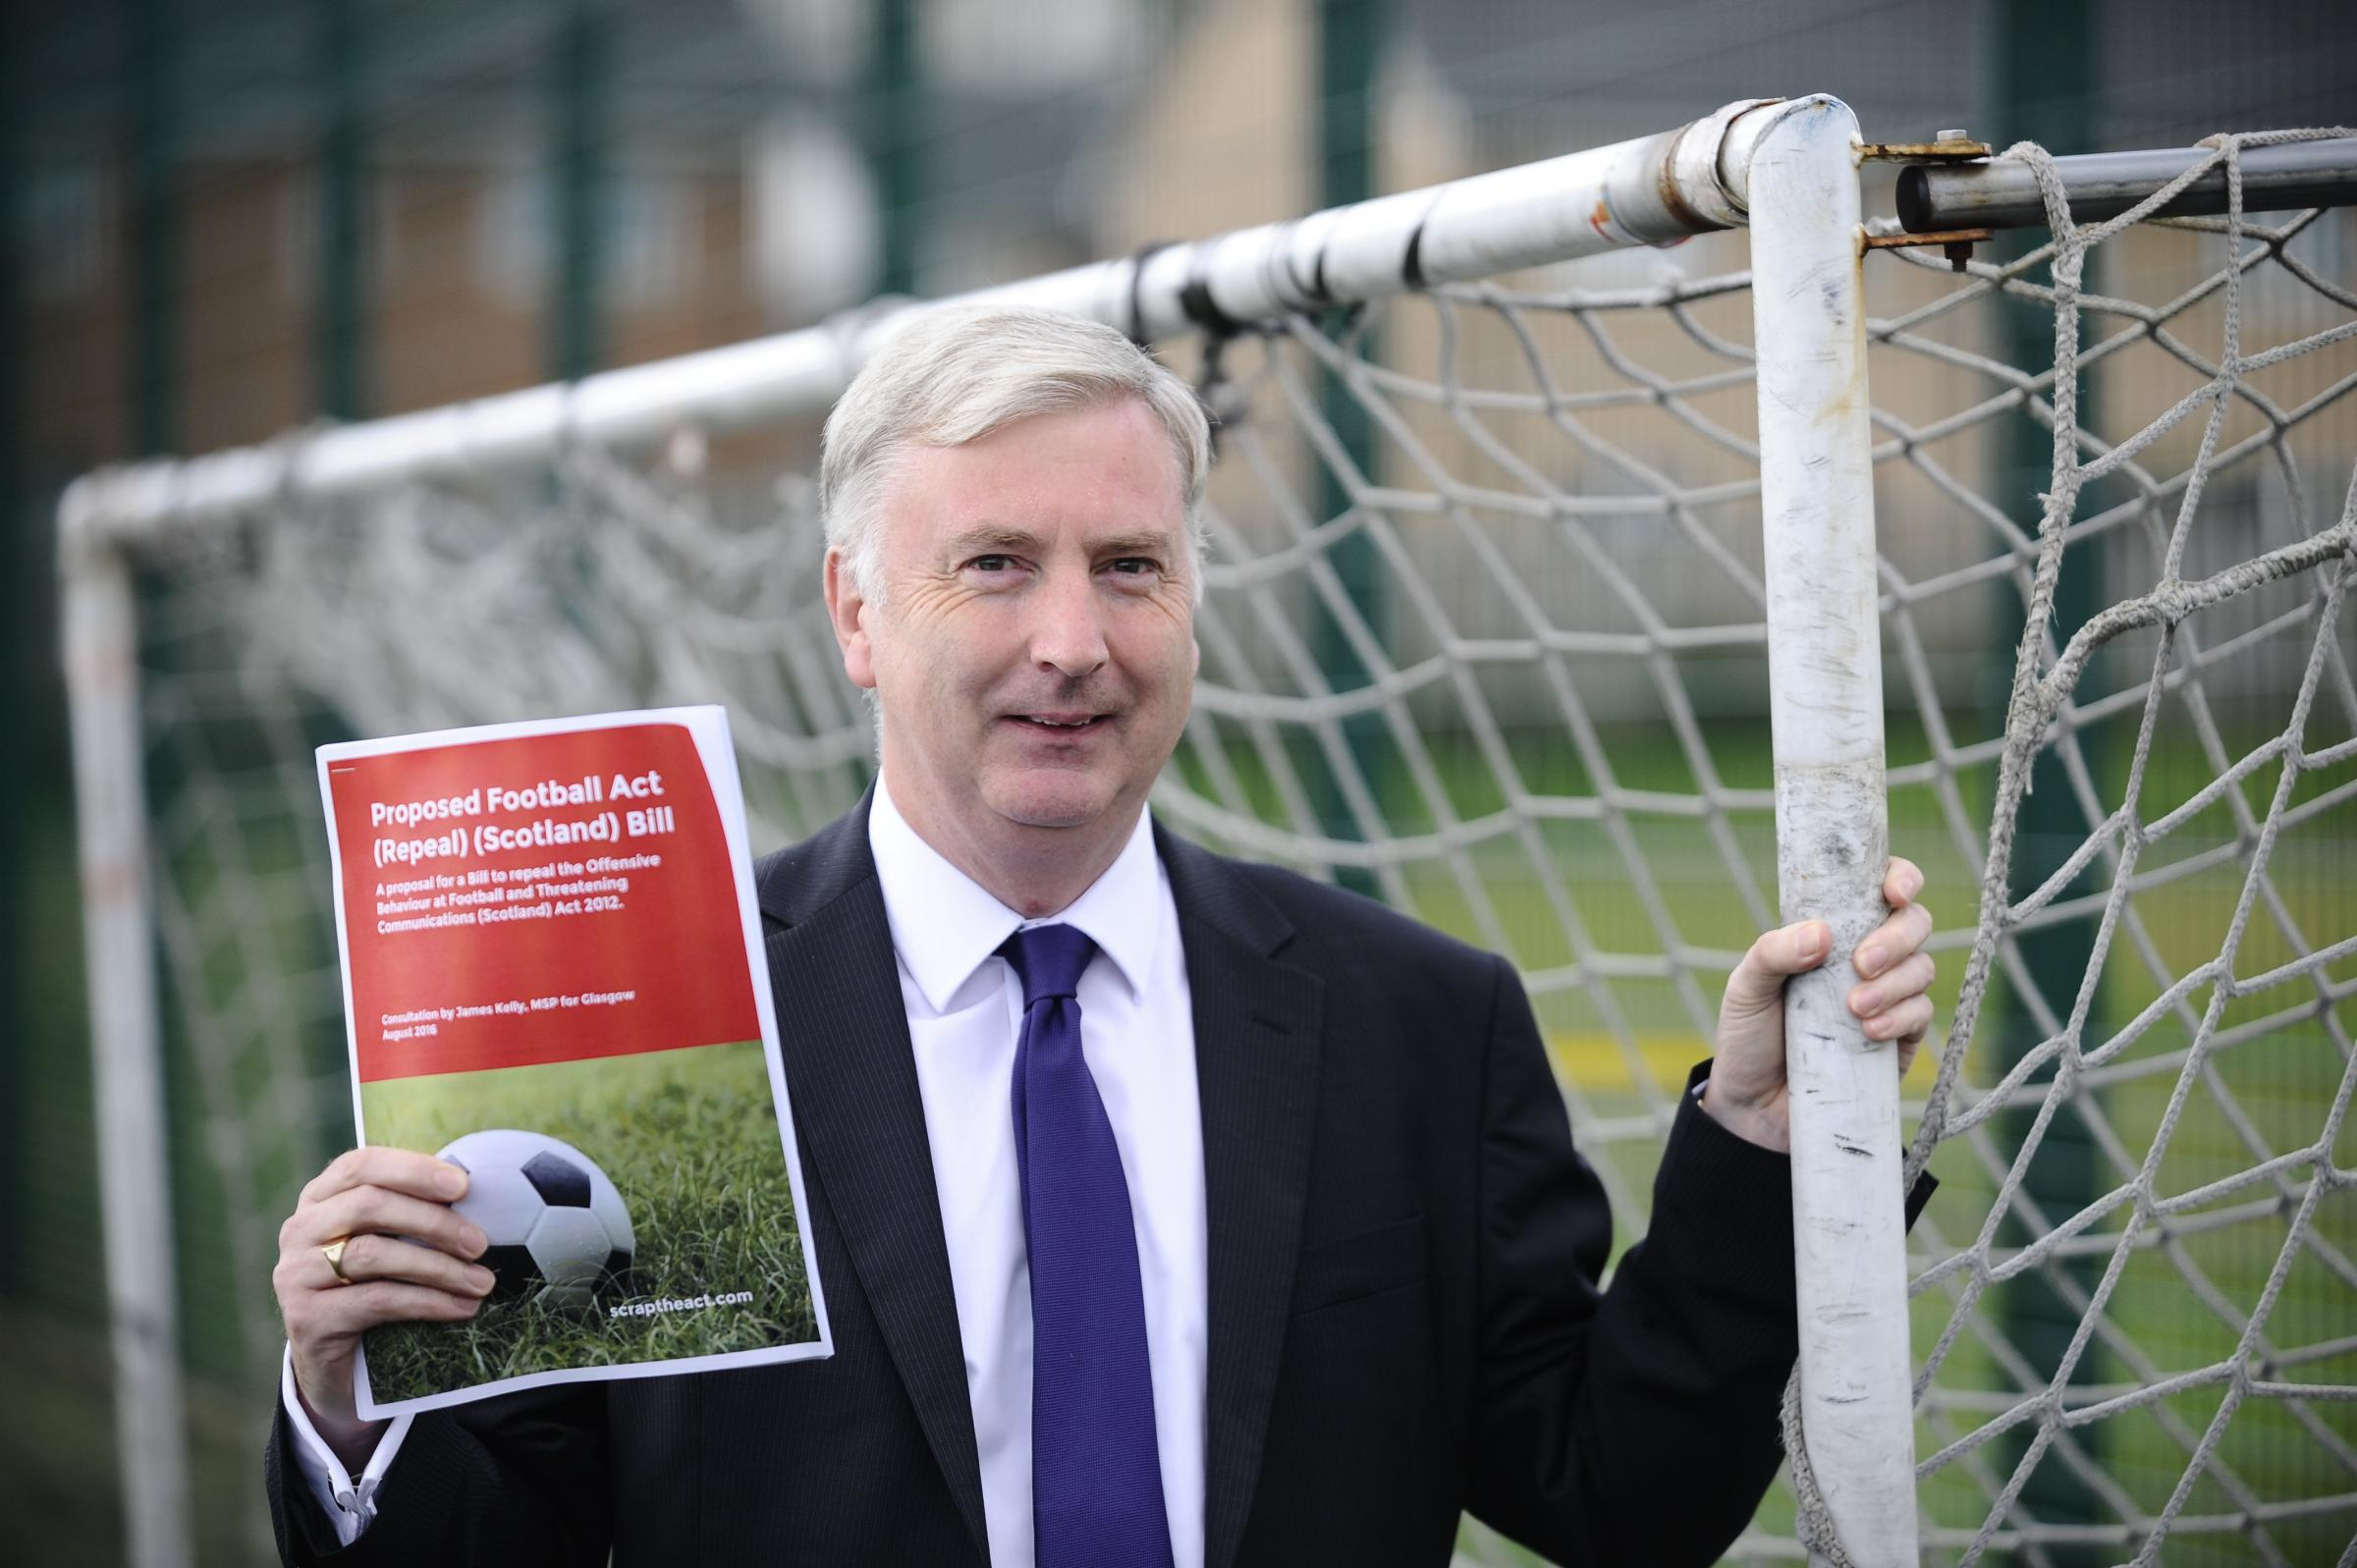 Scottish Labour MSP James Kelly officially launches a bill to scrap the Offensive Behaviour at Football Act at Fernhill Community Centre